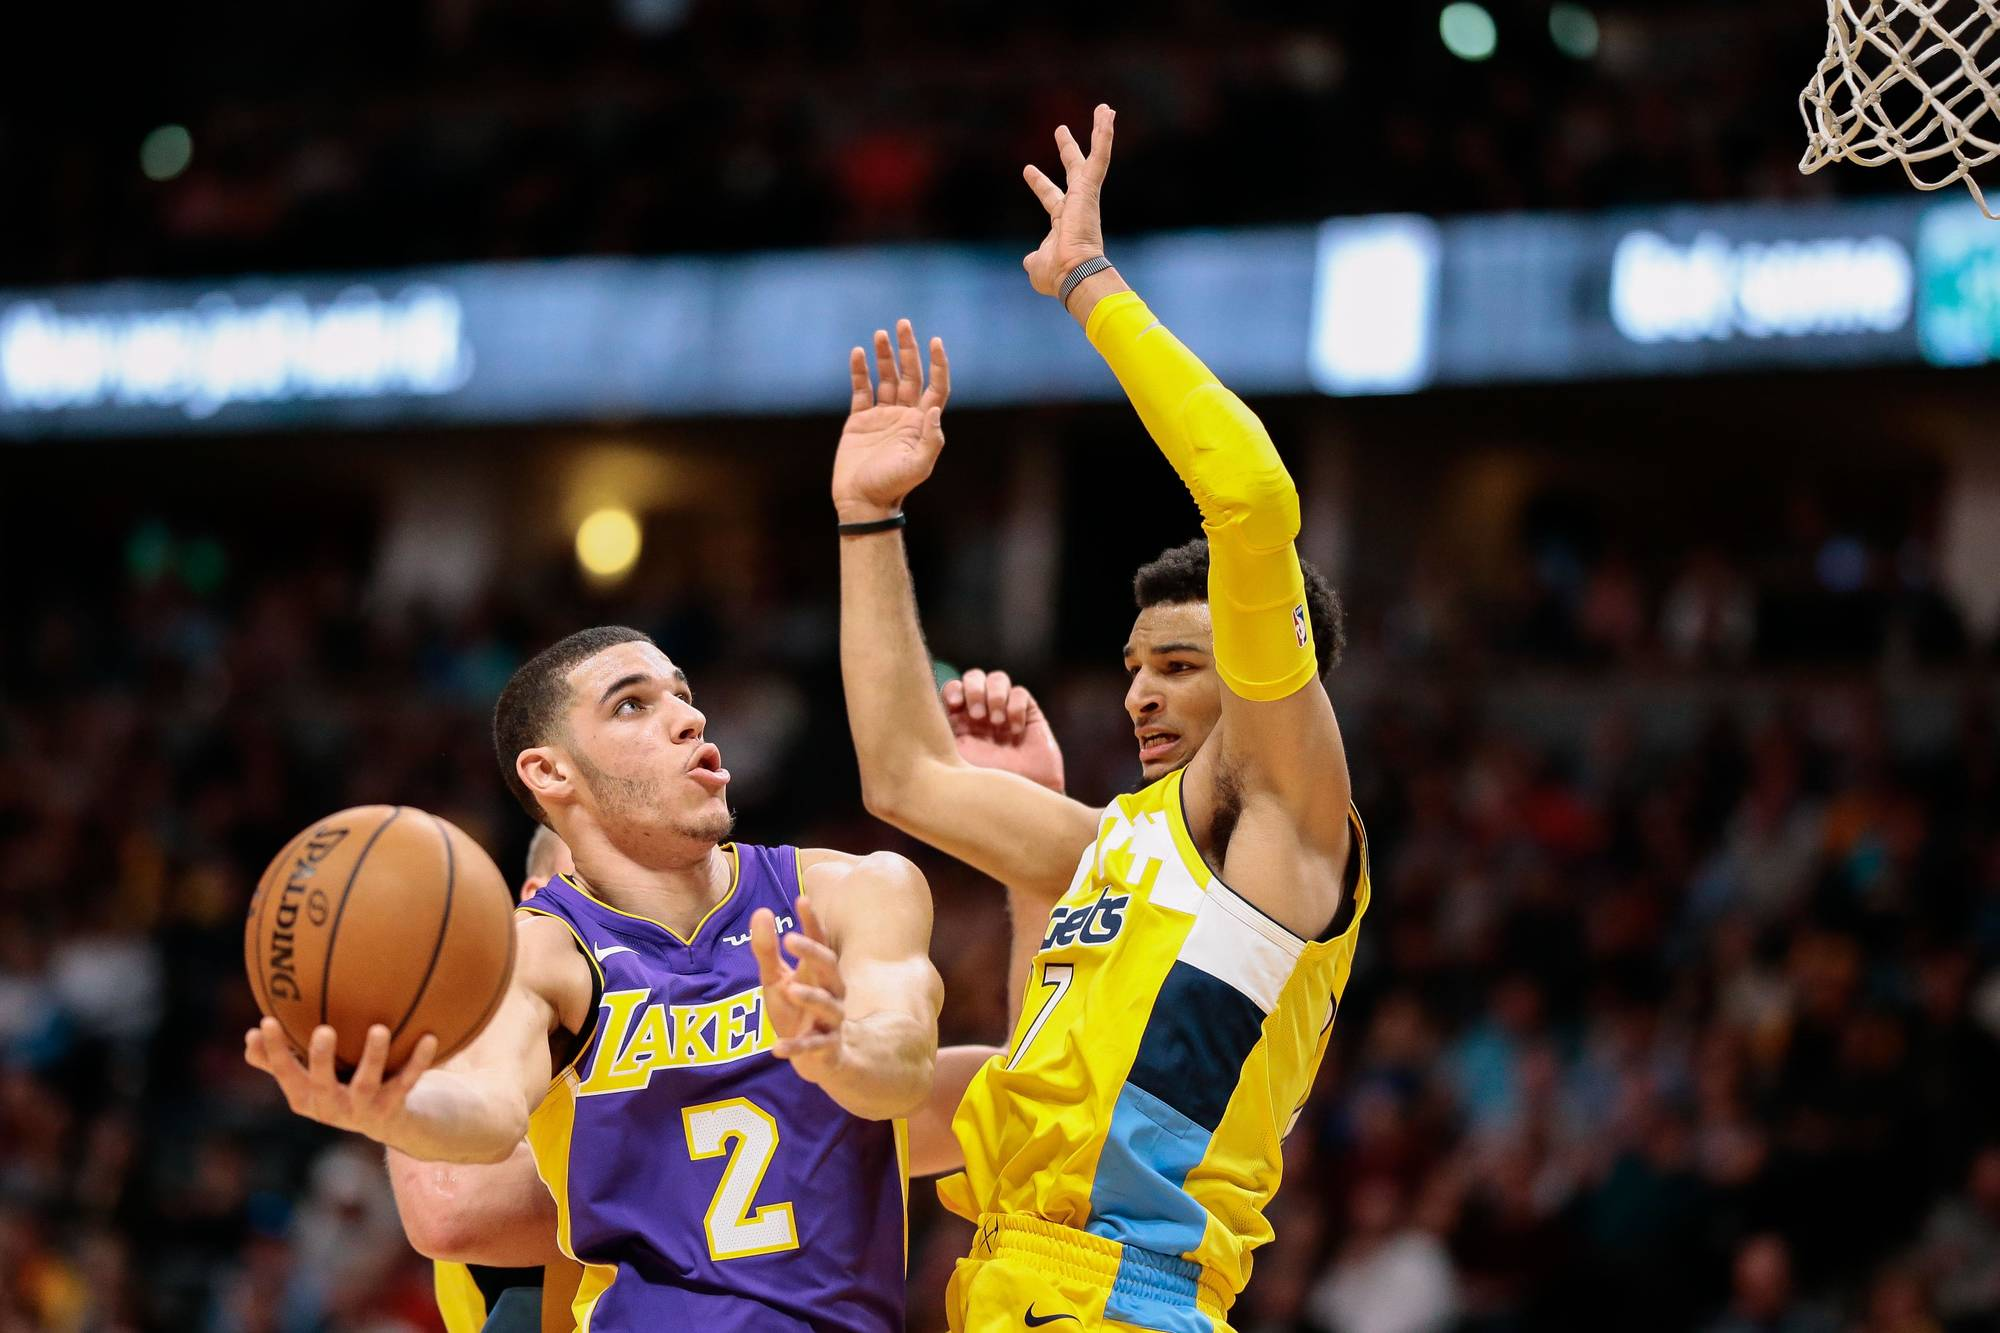 Refs botched call in Magic's loss to Lakers